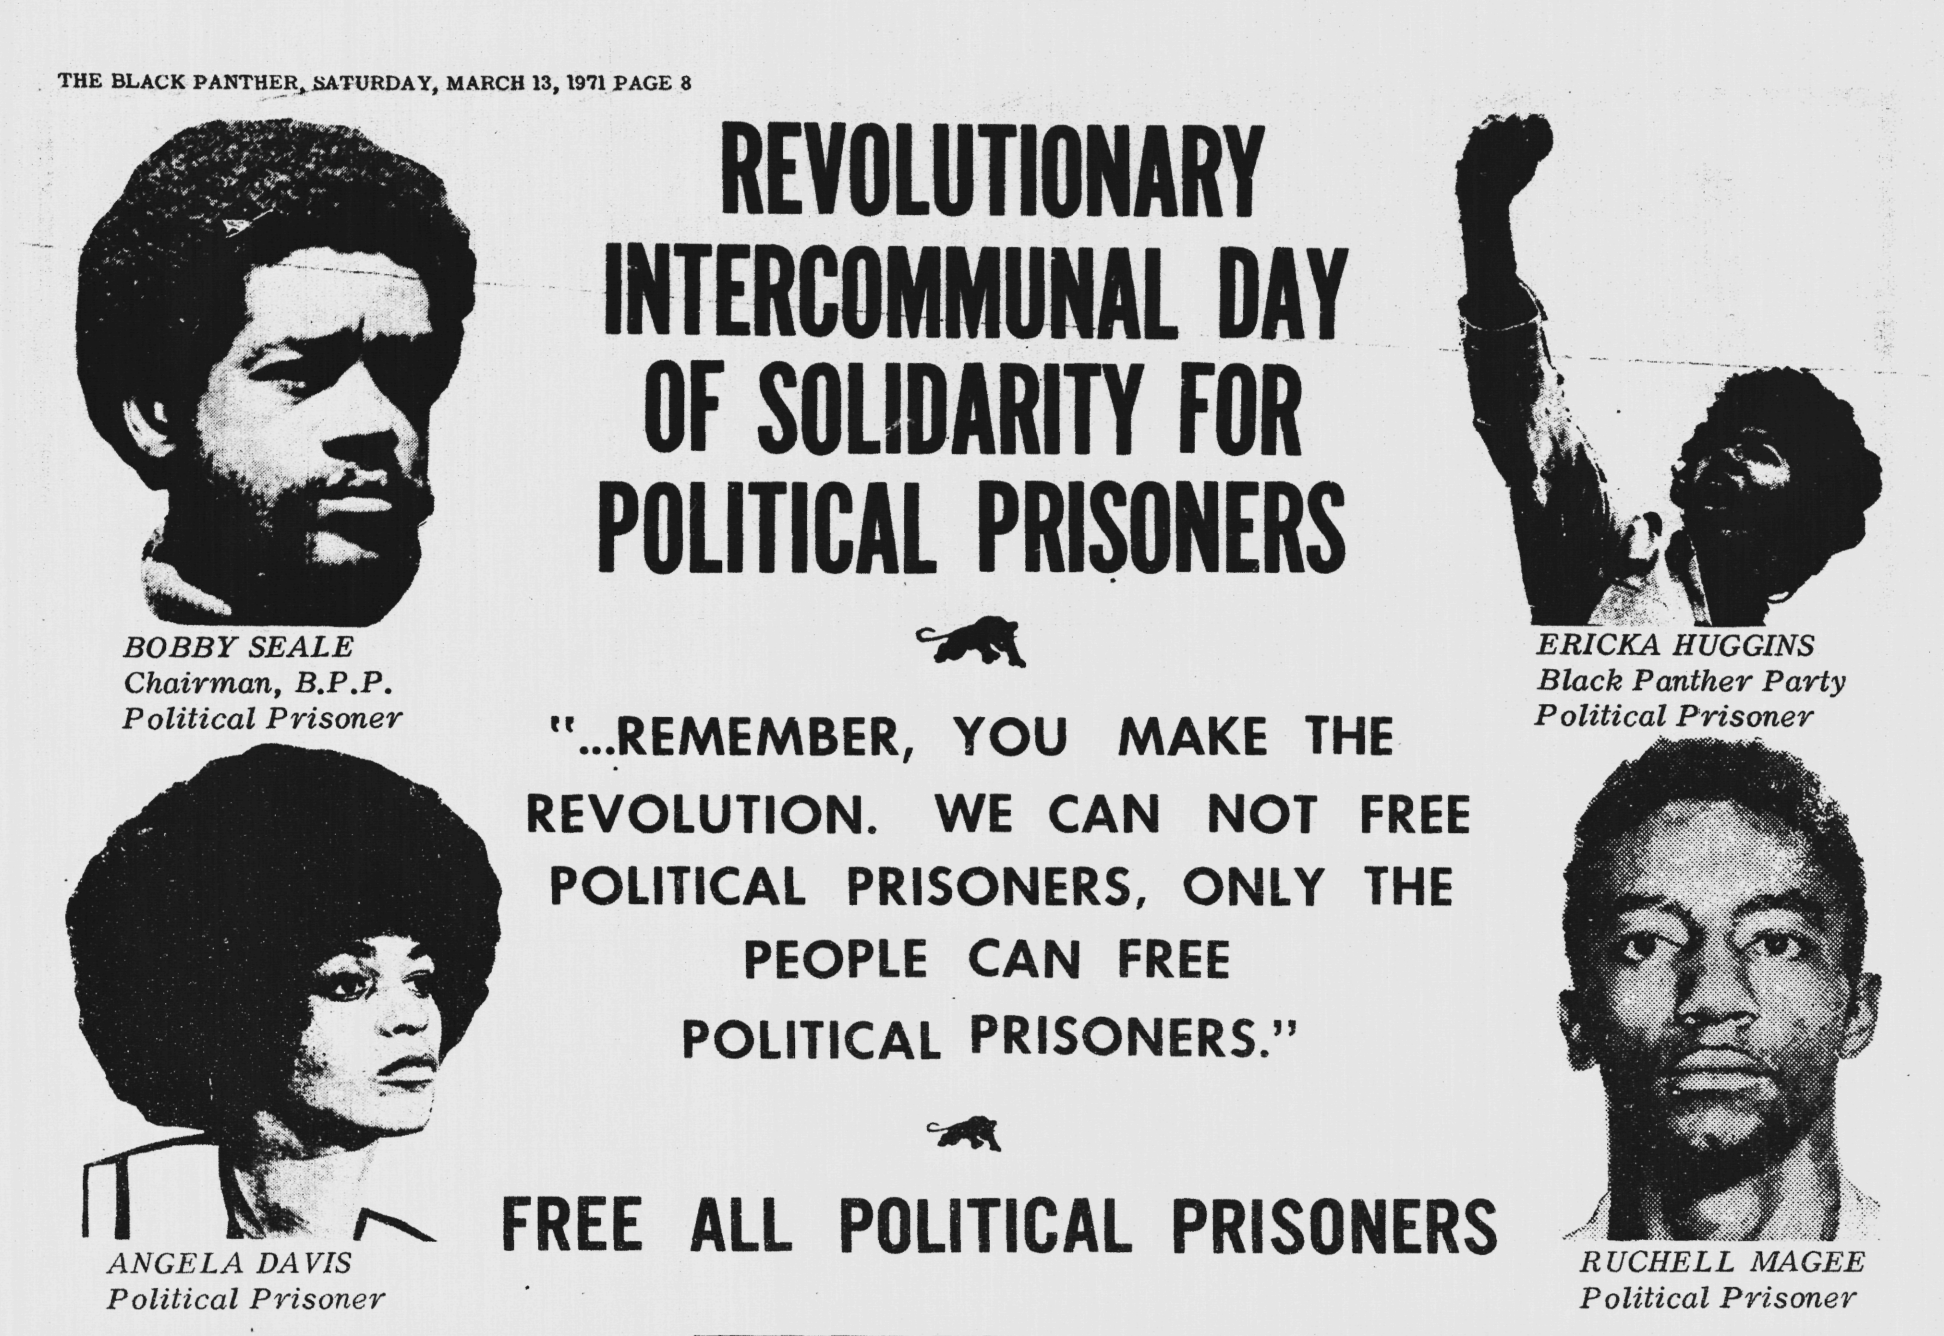 Image of excerpt from The Black Panther newspaper, advertising for a day of solidarity for political prisoners; includes photos of Angela Davis, Bobby Seale, Ericka Huggins and Ruchell Magee